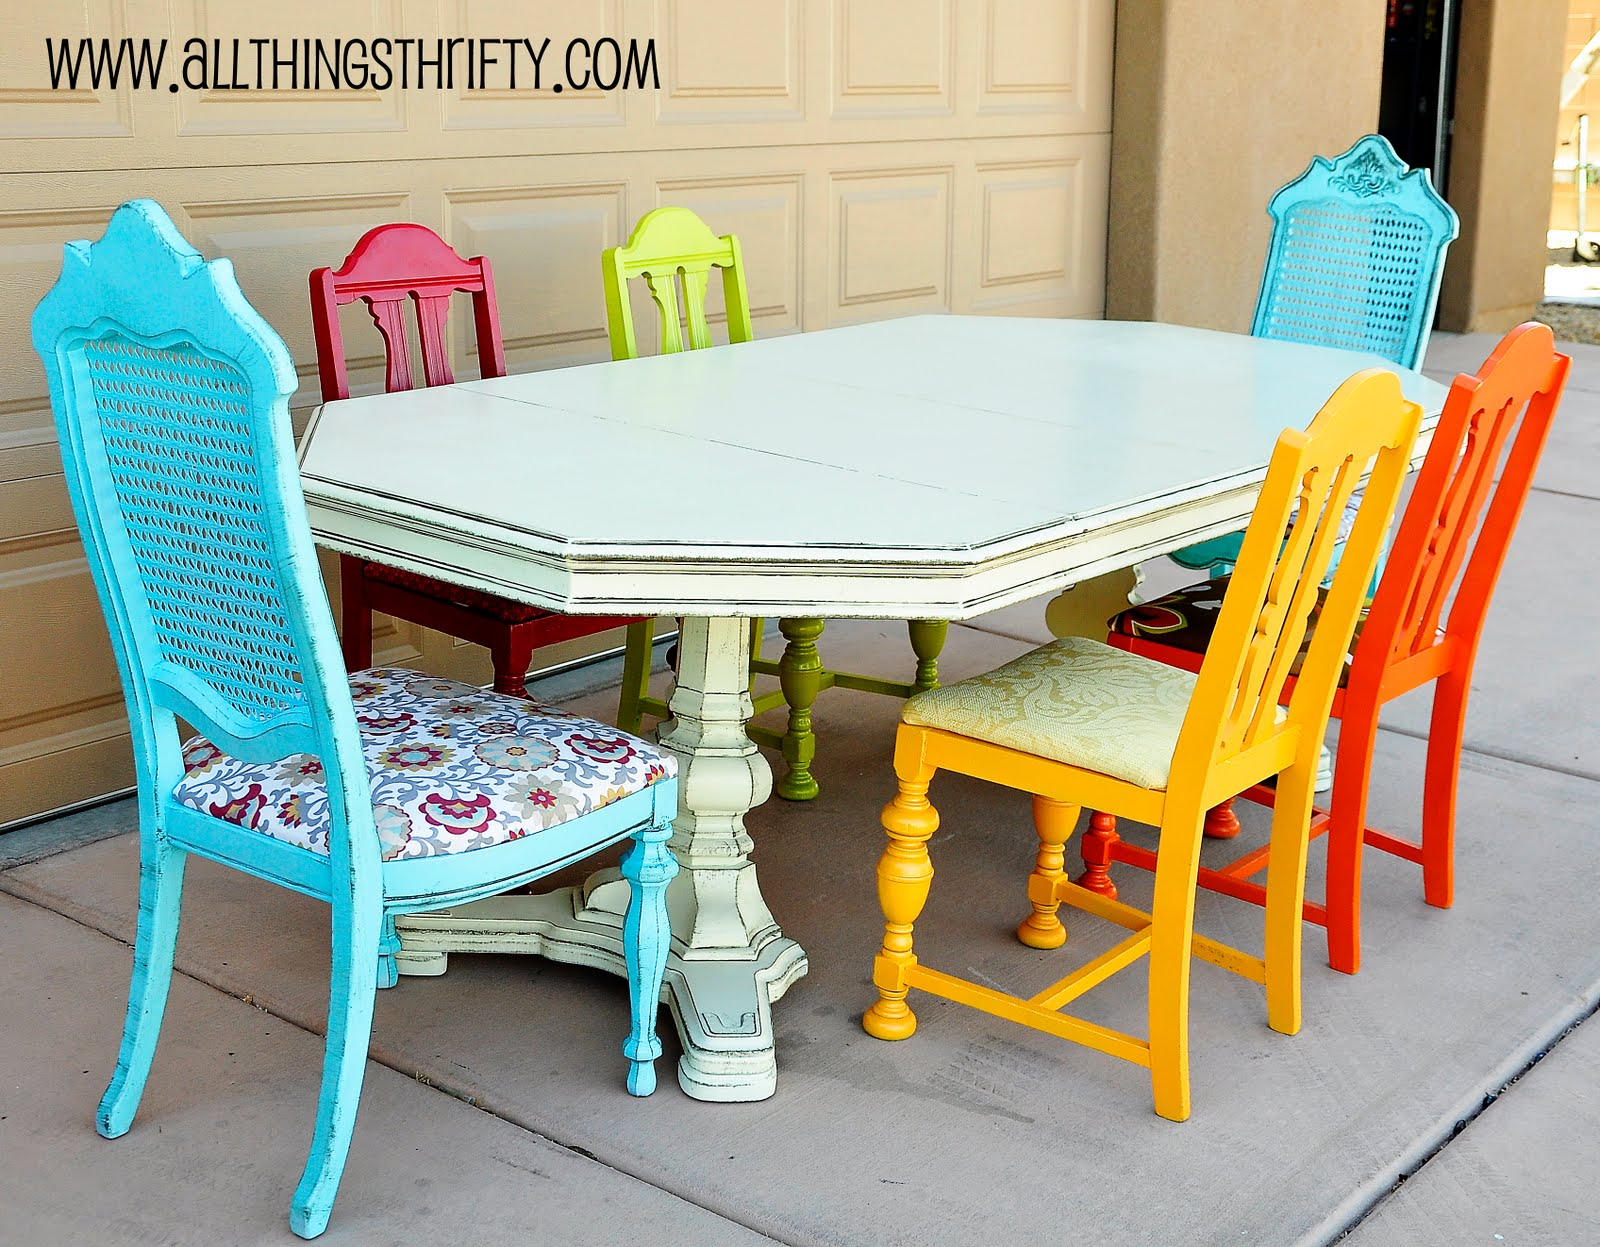 Dining room table transformation Restoring old wooden furniture